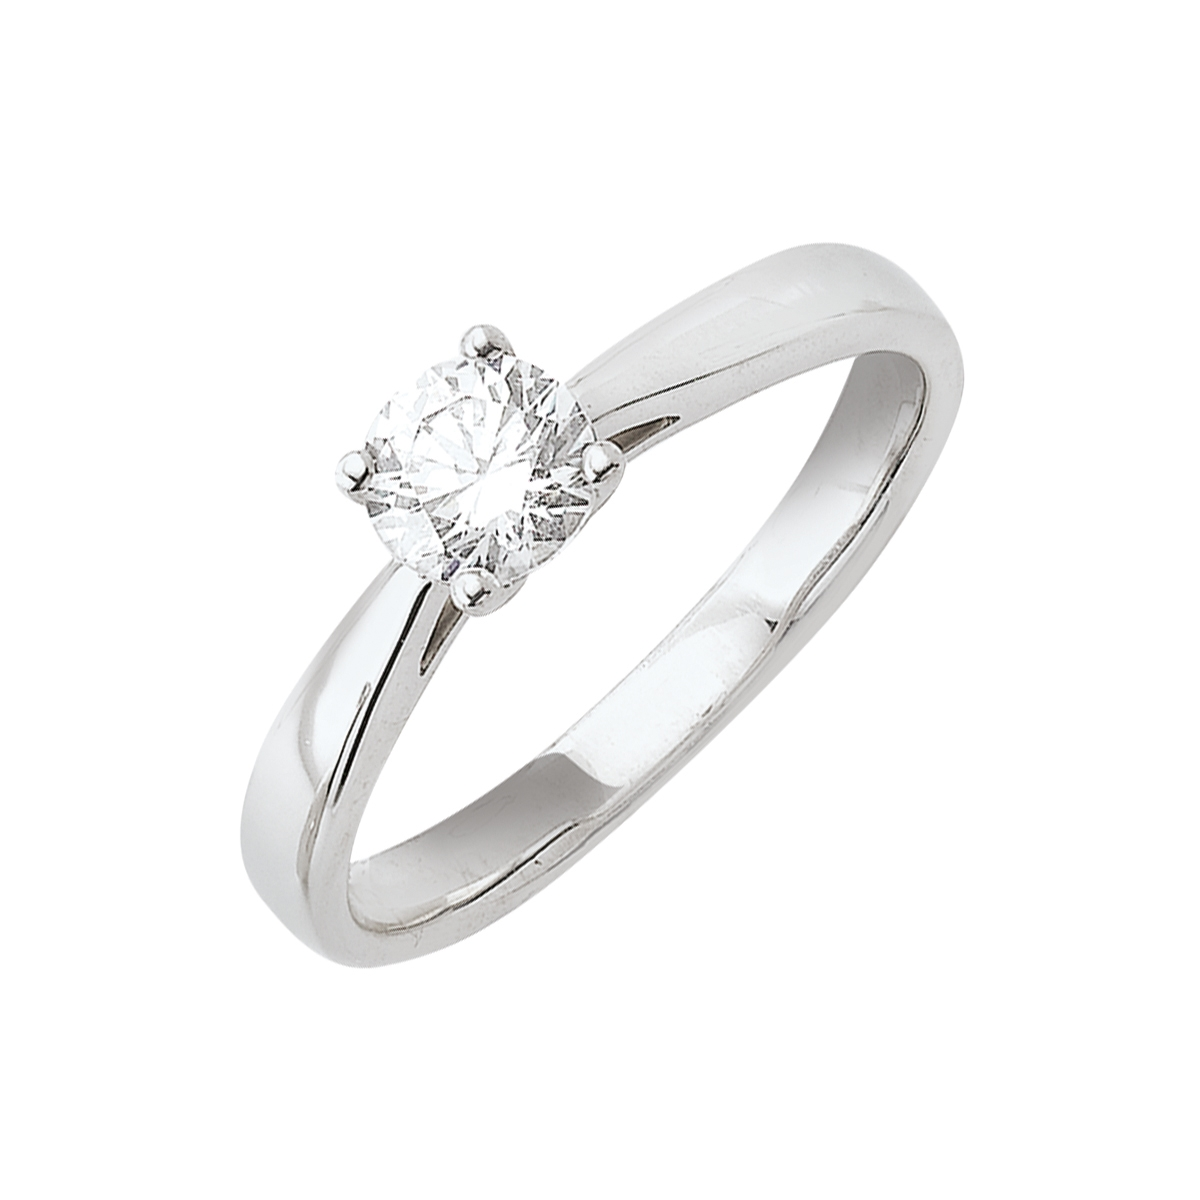 Solitaire or blanc - Diamant synthétique 0,75 carat